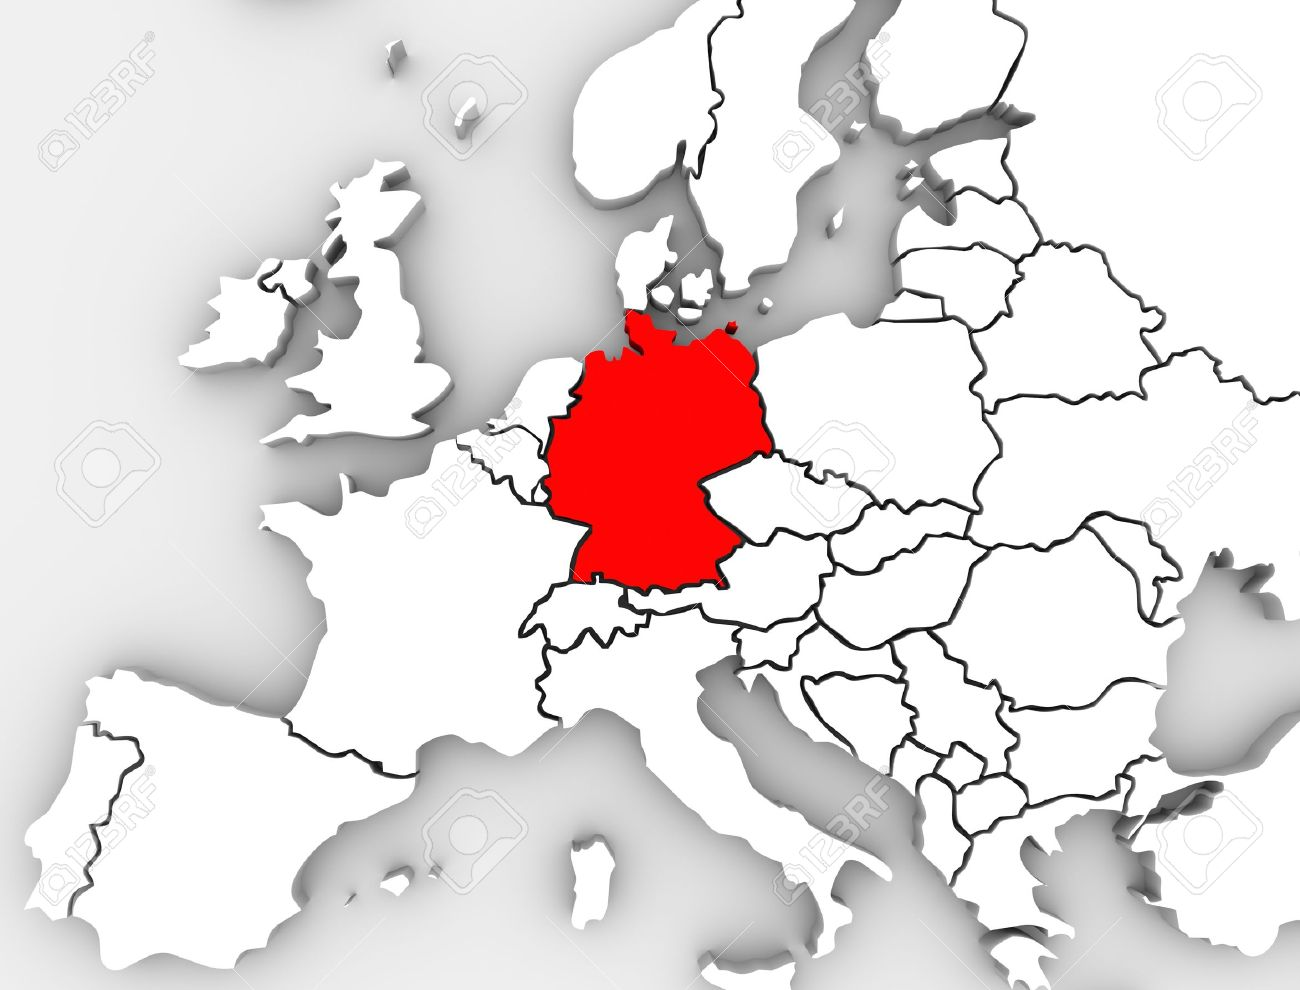 an abstract map of europe with the country of germany in red and other european countries